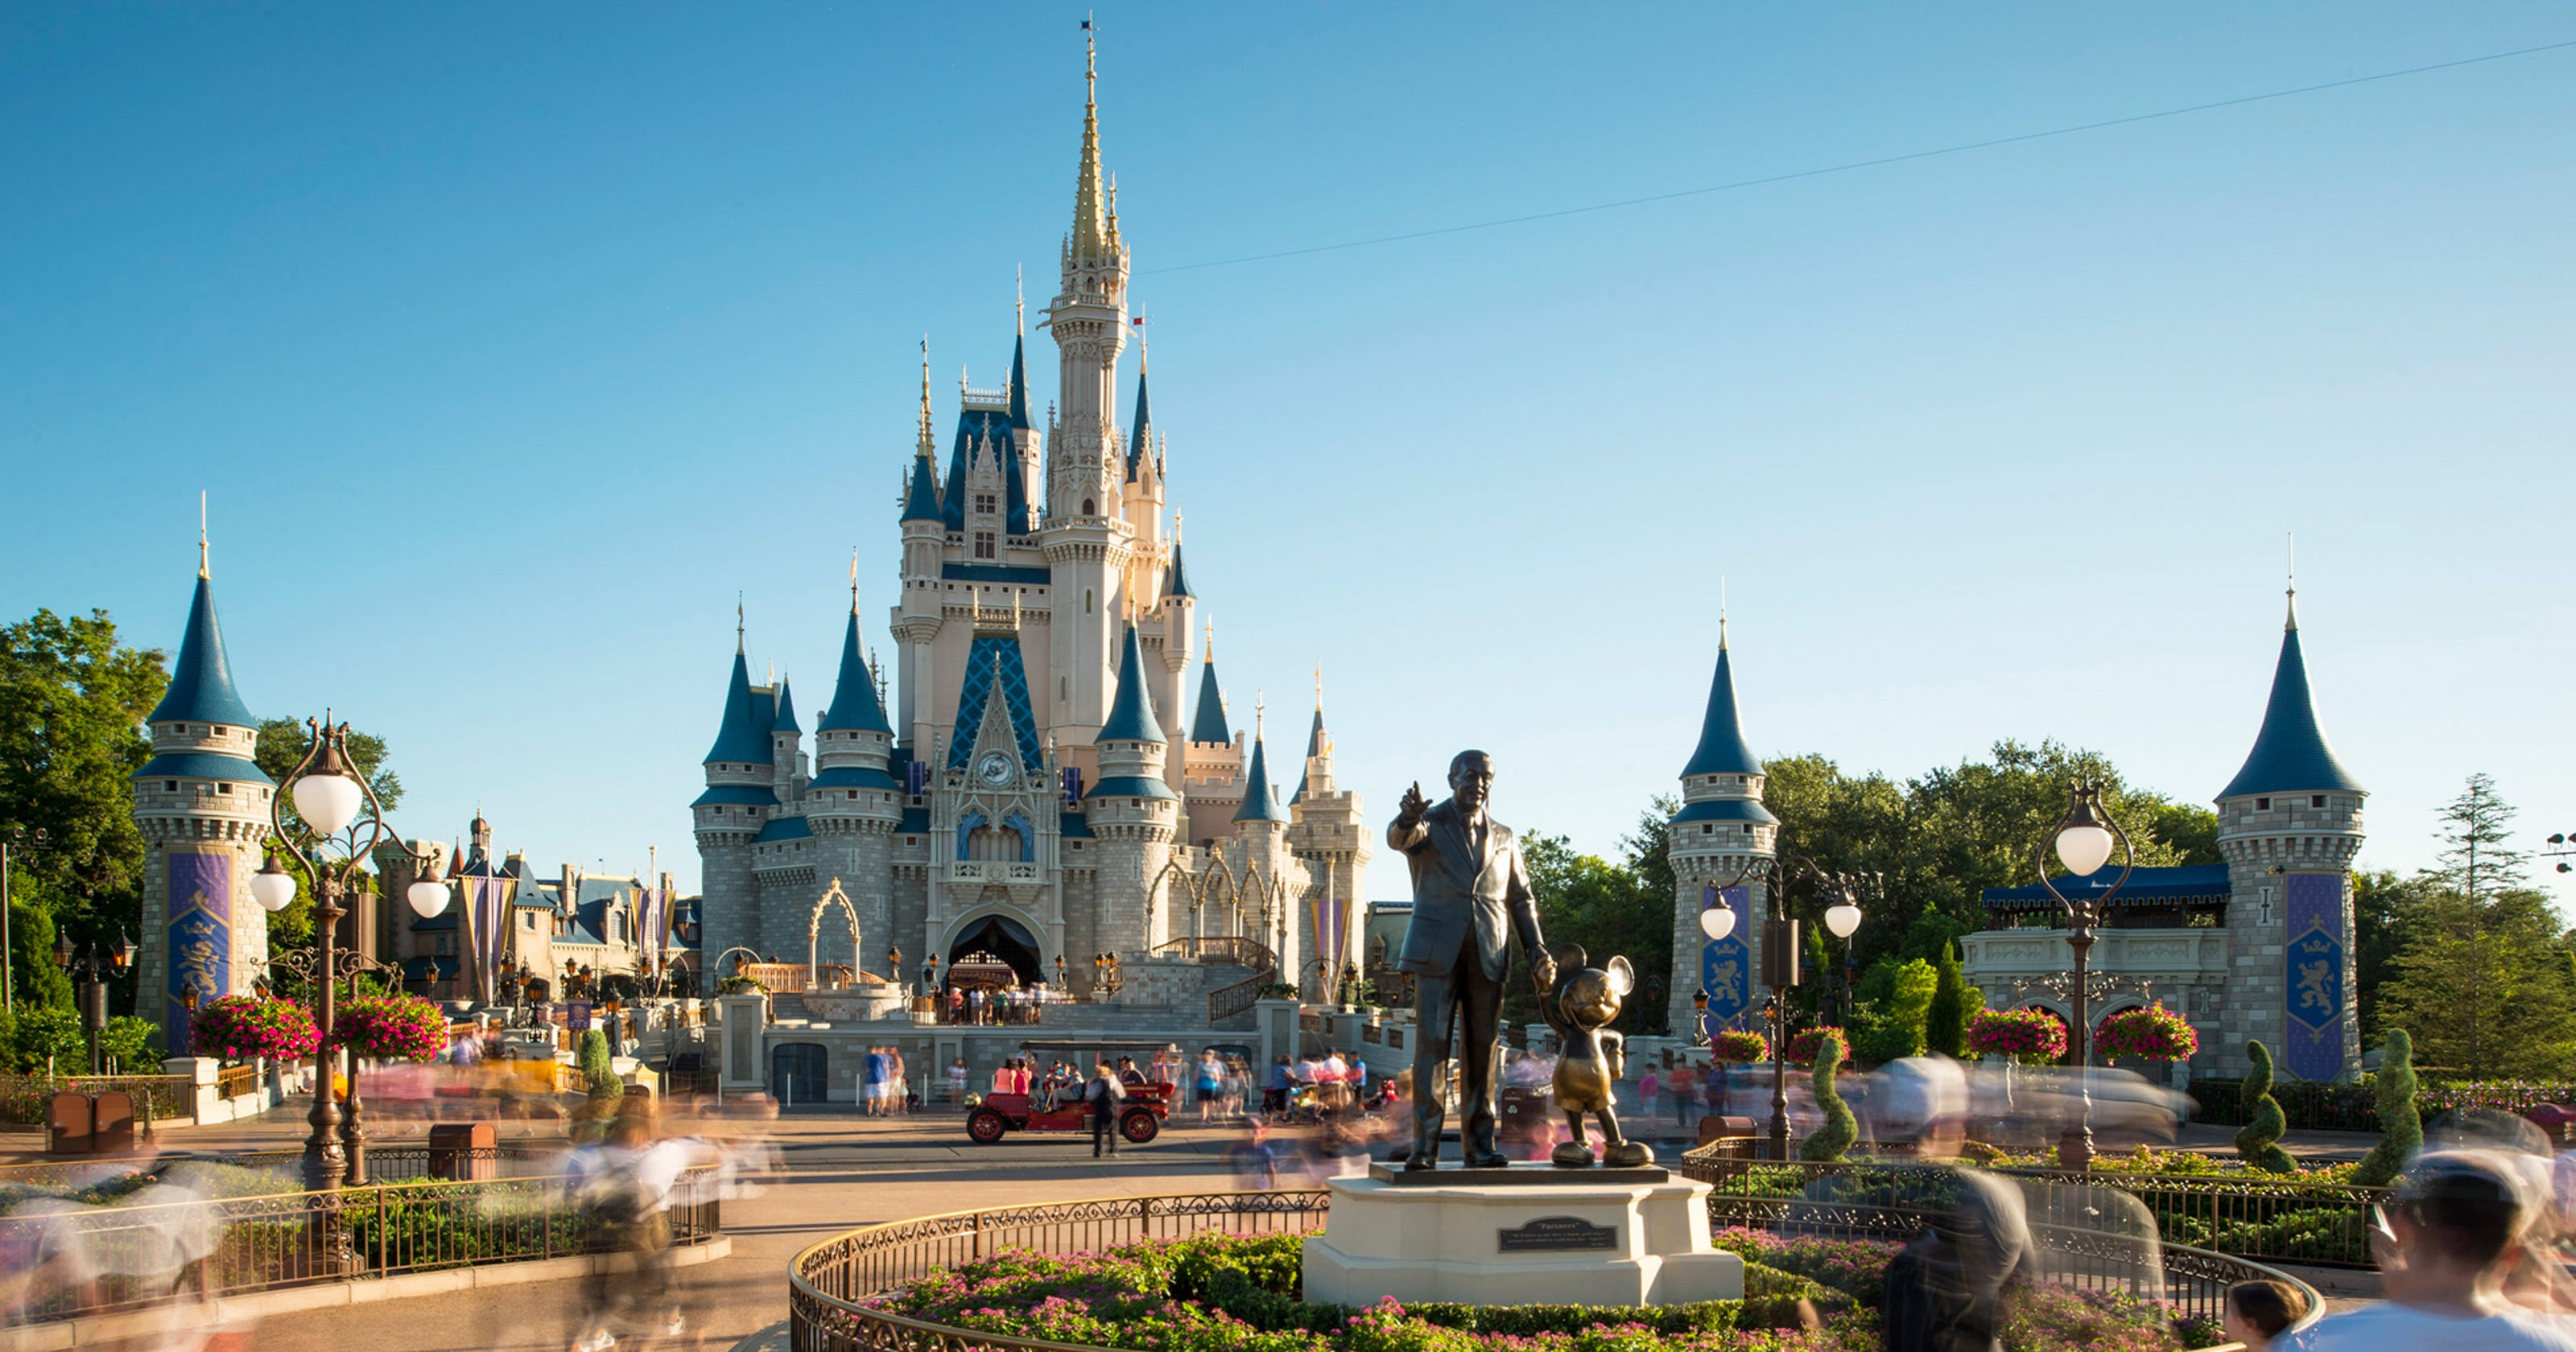 The Disney World obsession is real for many families